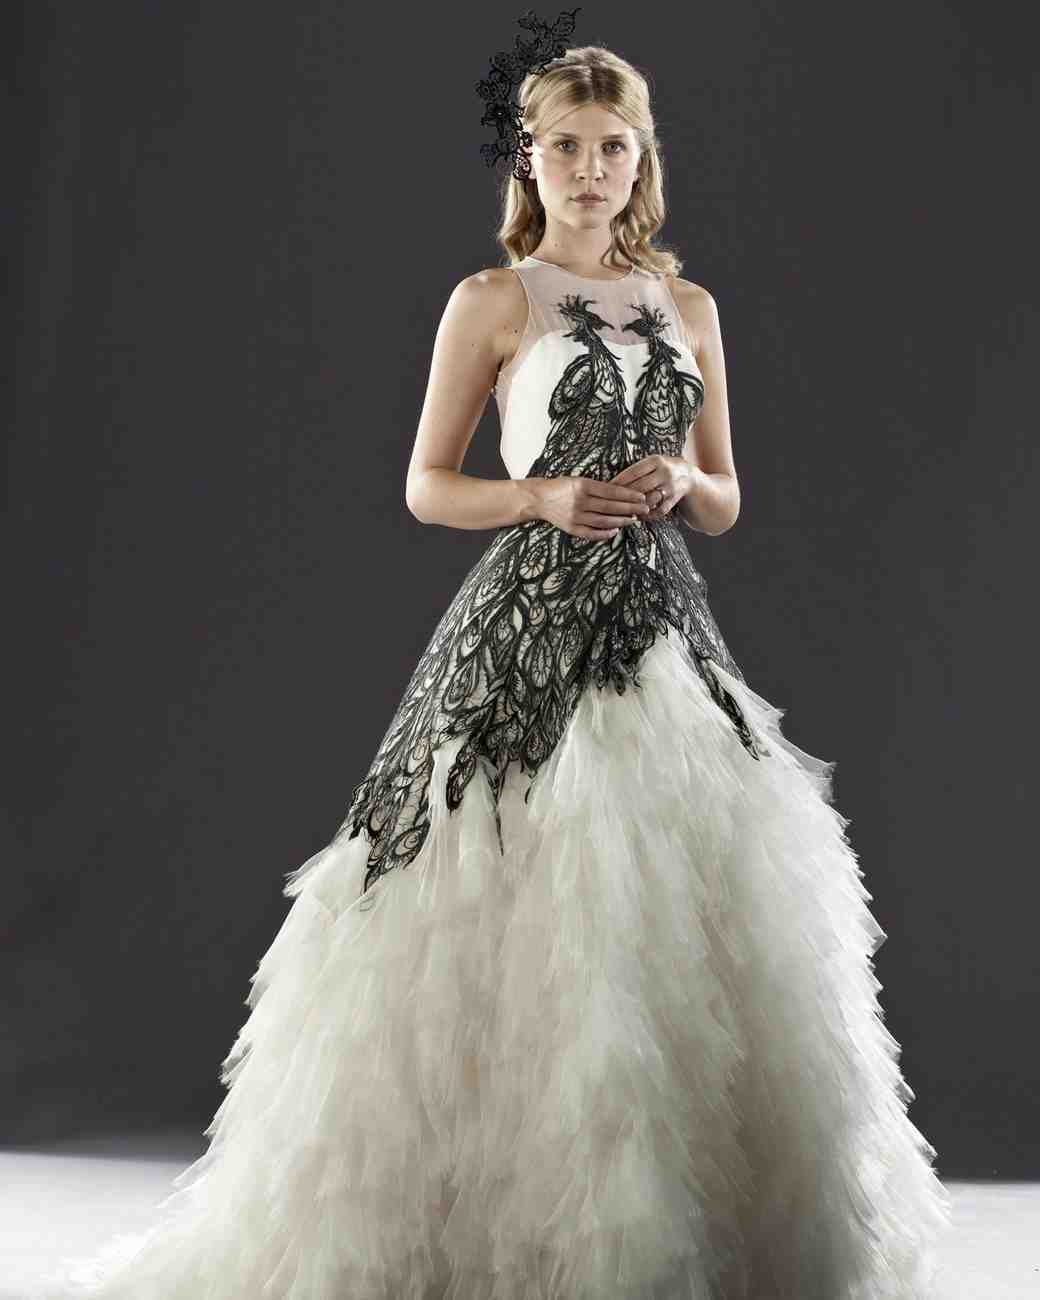 movie-wedding-dresses-harry-potter-clemence-poesy-0316.jpg